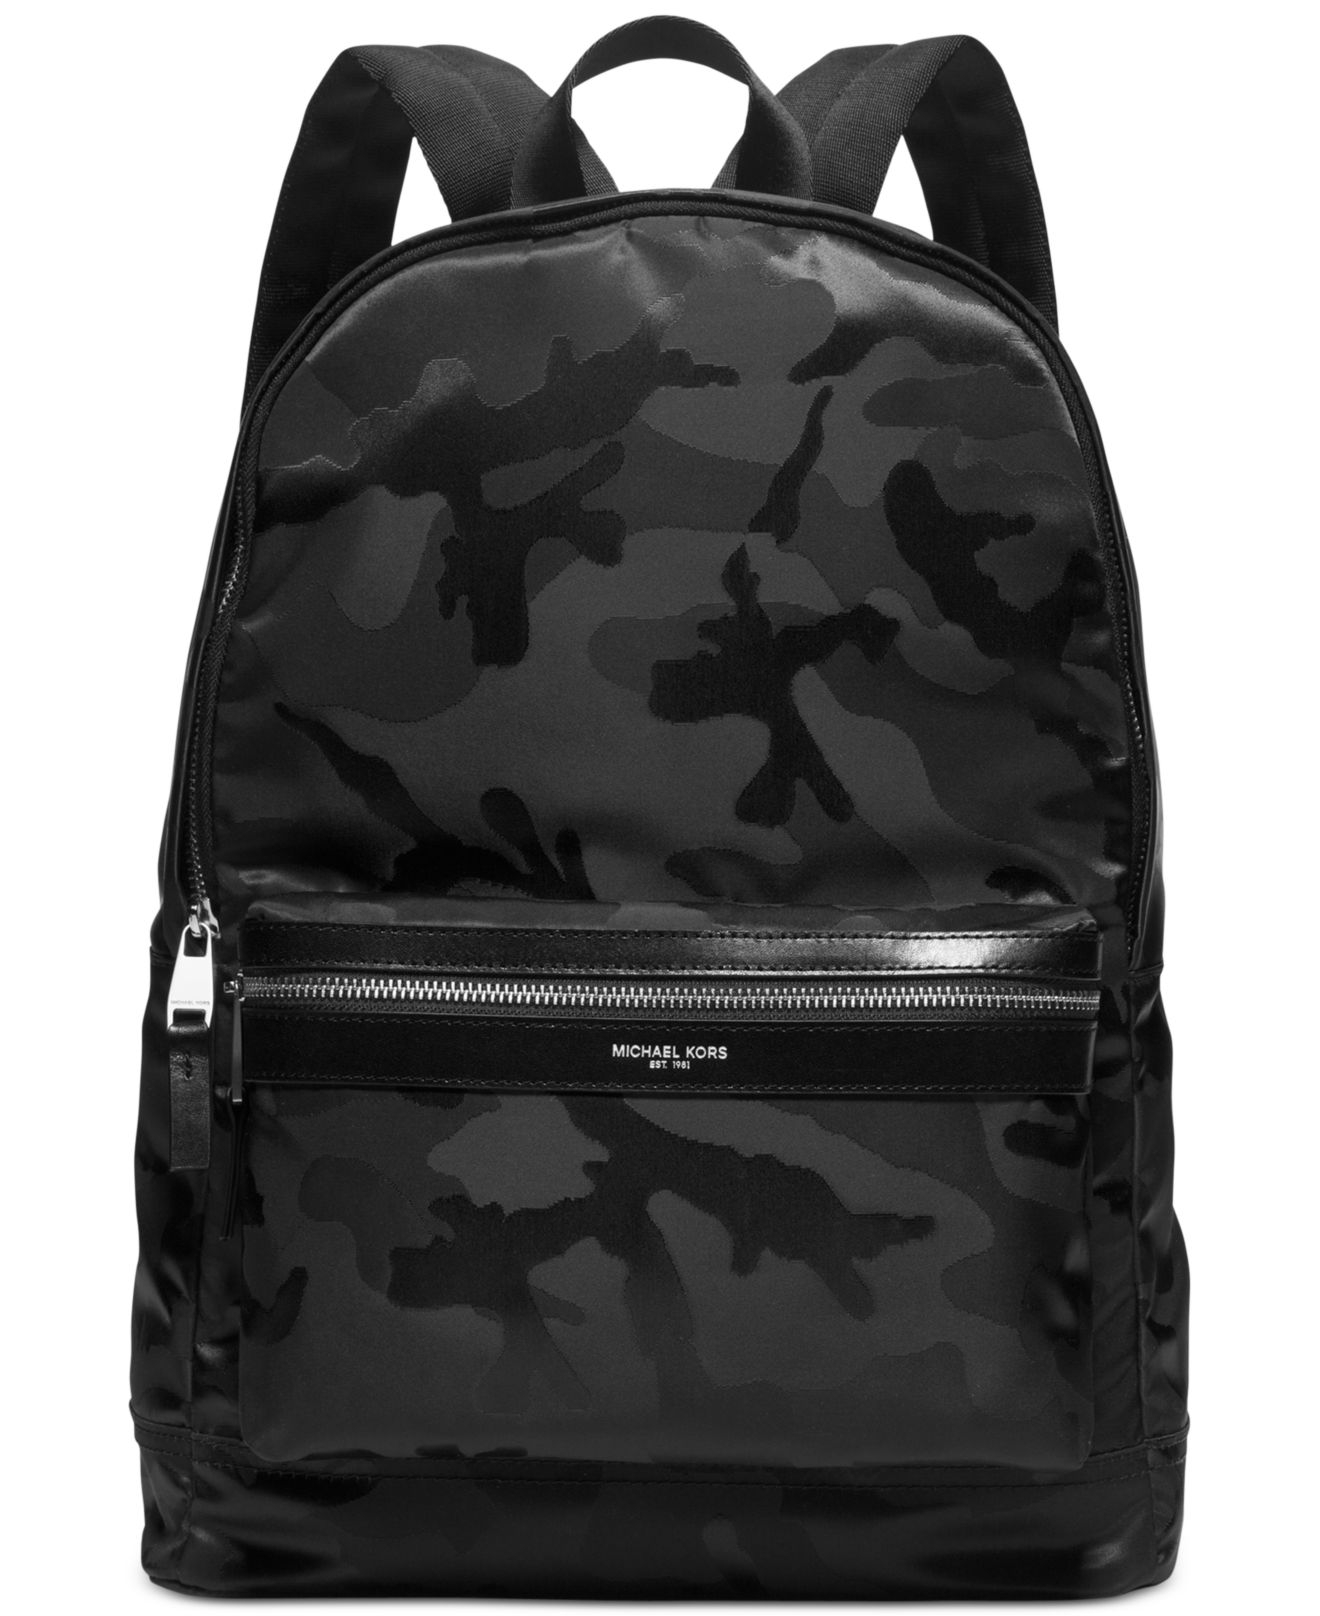 Lyst - Michael kors Kent Camo Backpack in Black for Men